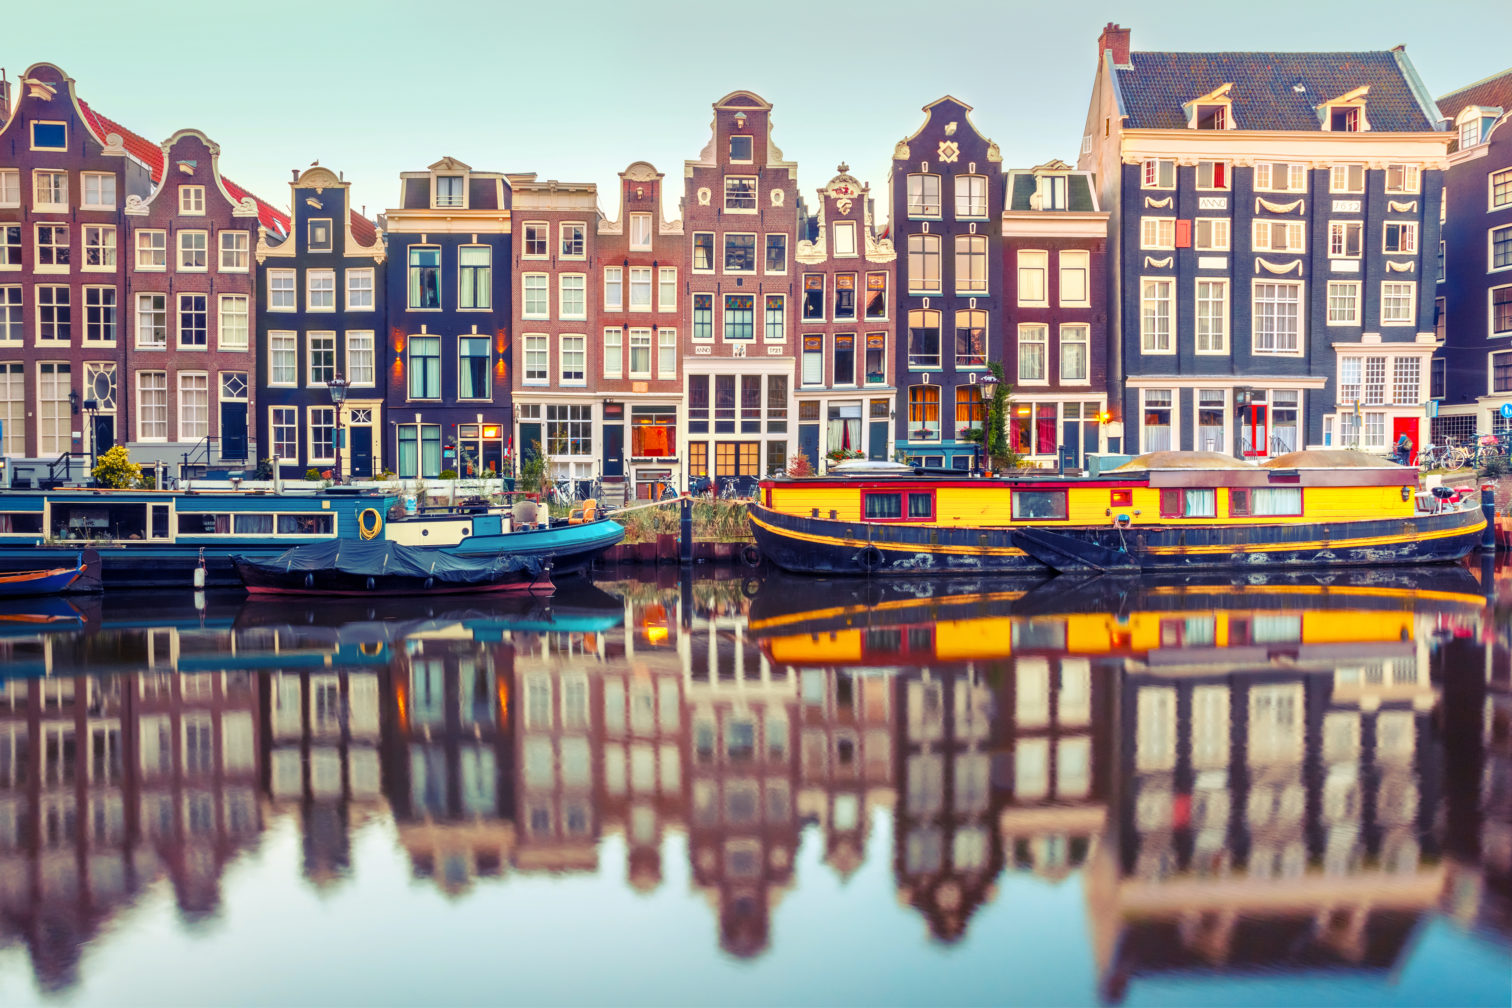 Canal in Amsterdam with colorful boats.